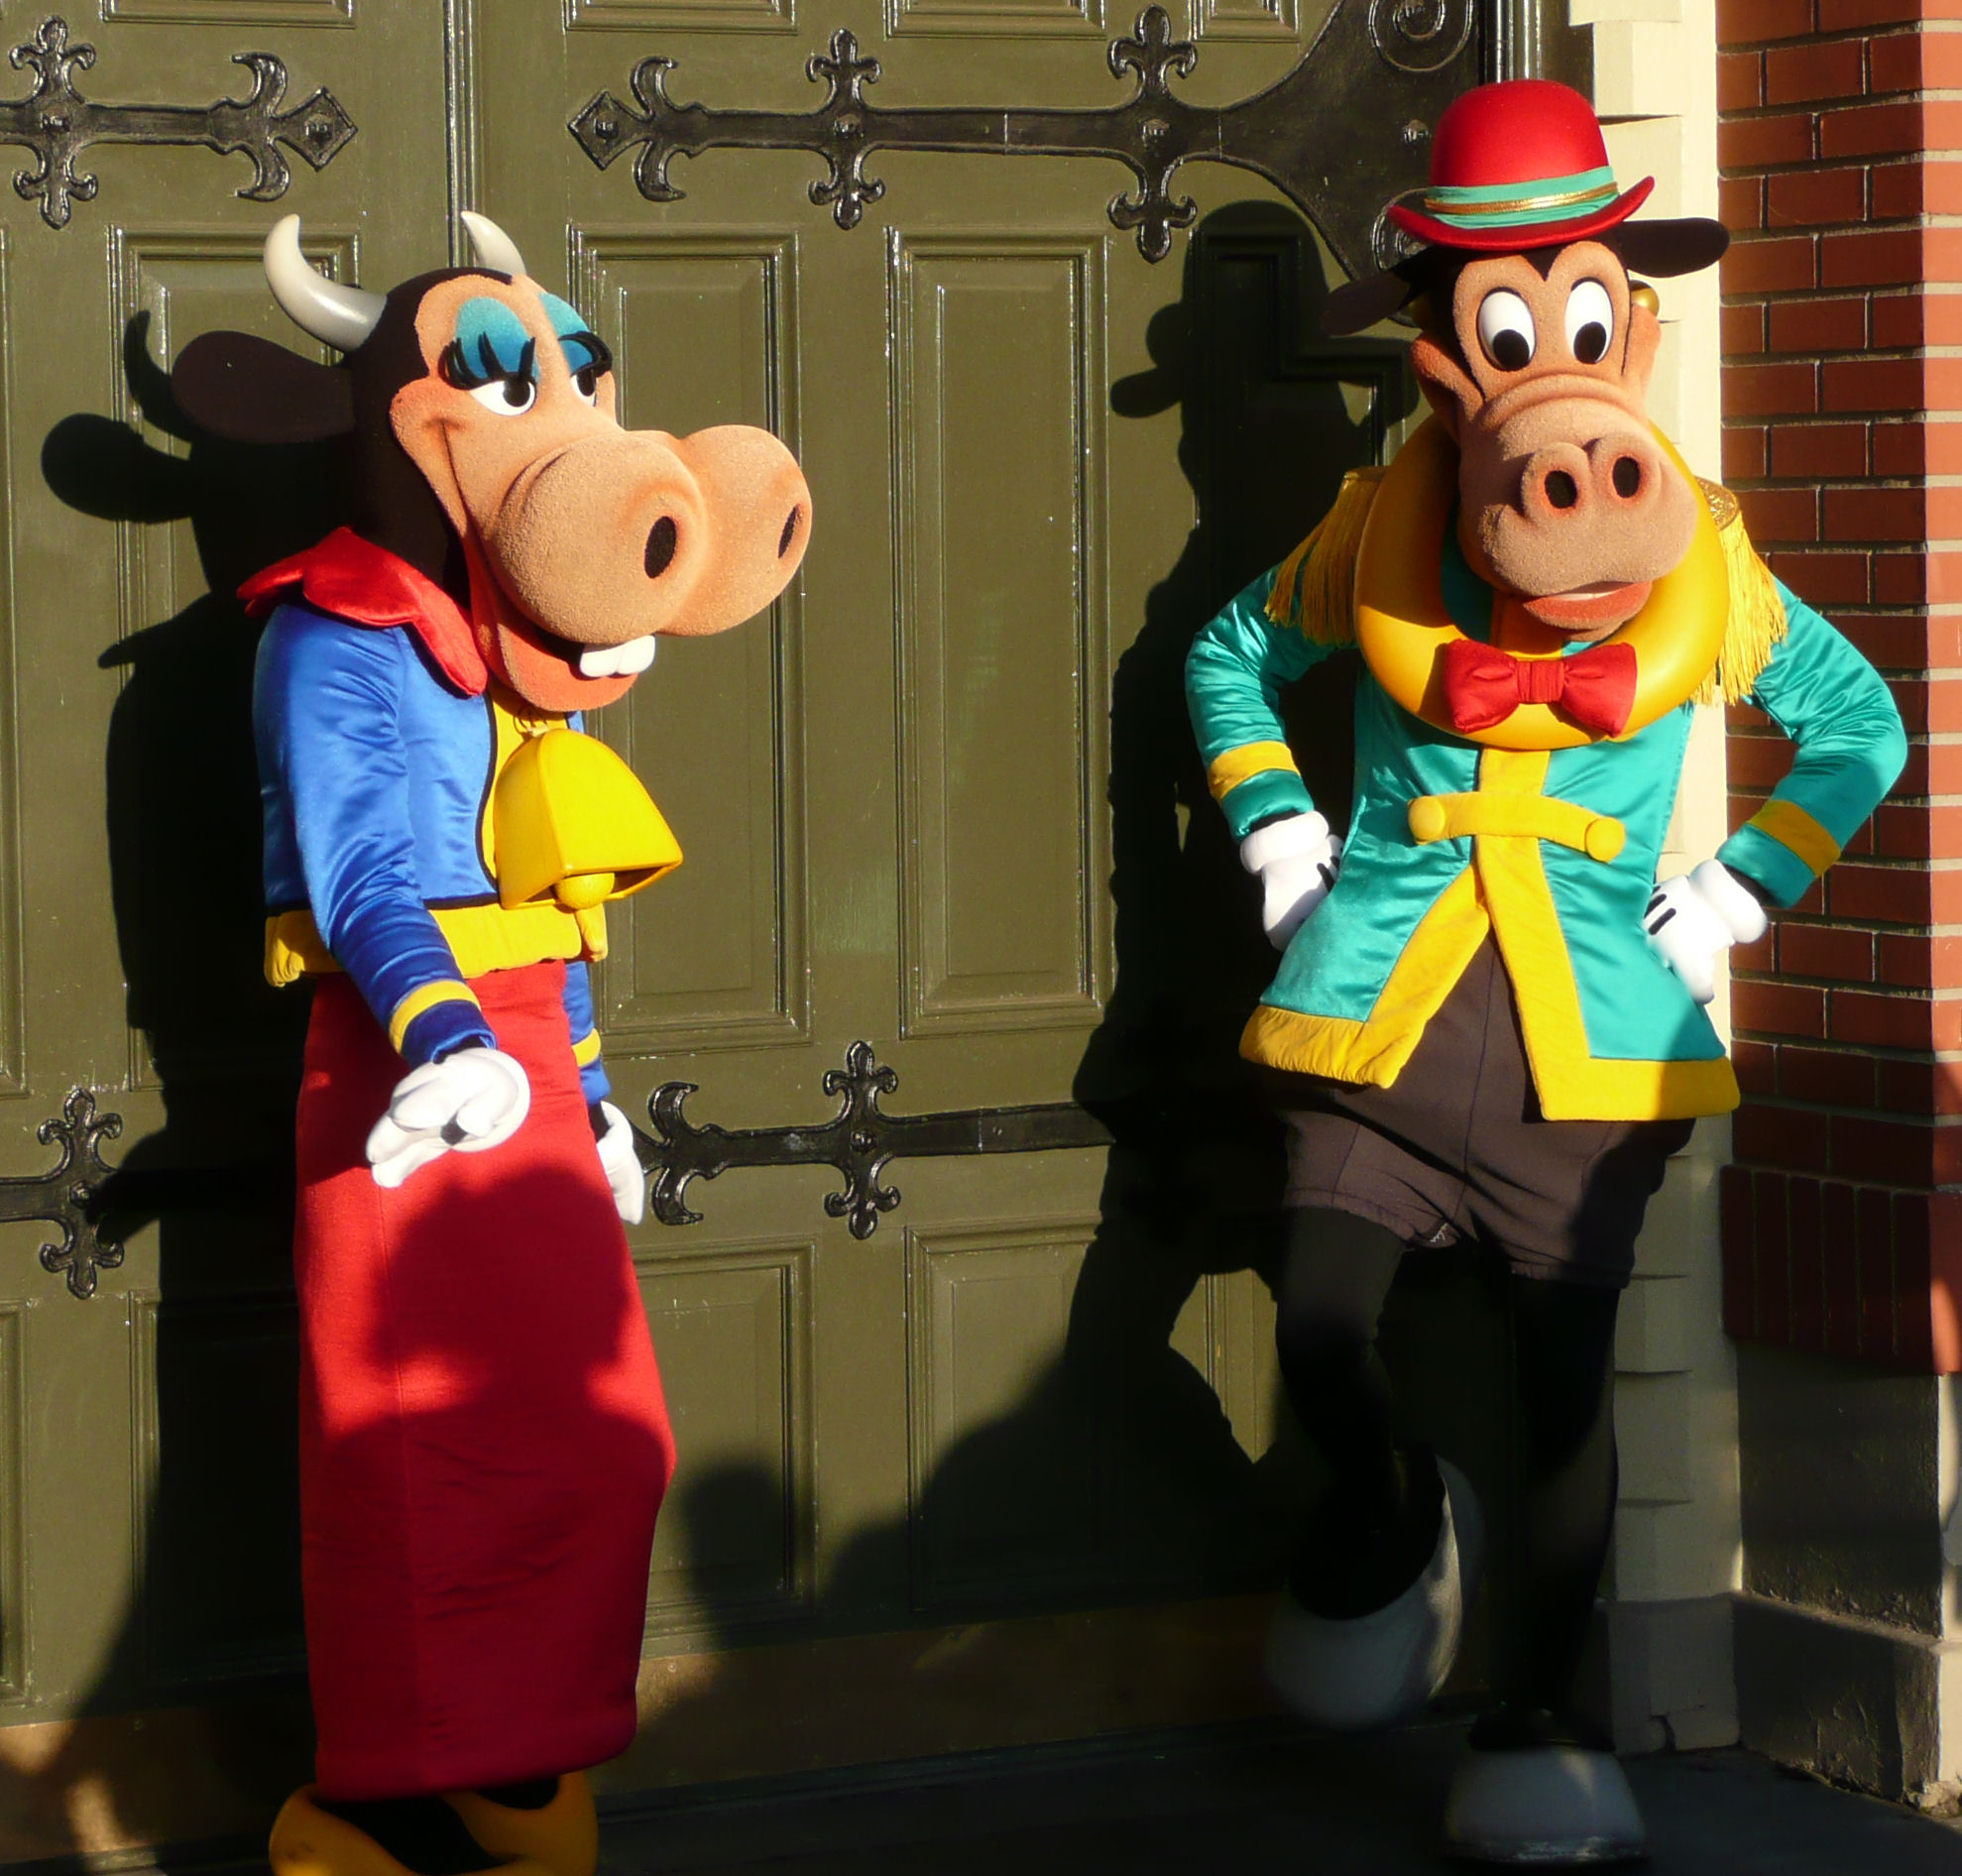 Two rarely seen Disney characters—Clarabelle Cow and Horace Horsecollar—on Main Street, USA, Magic Kingdom, Disney World.